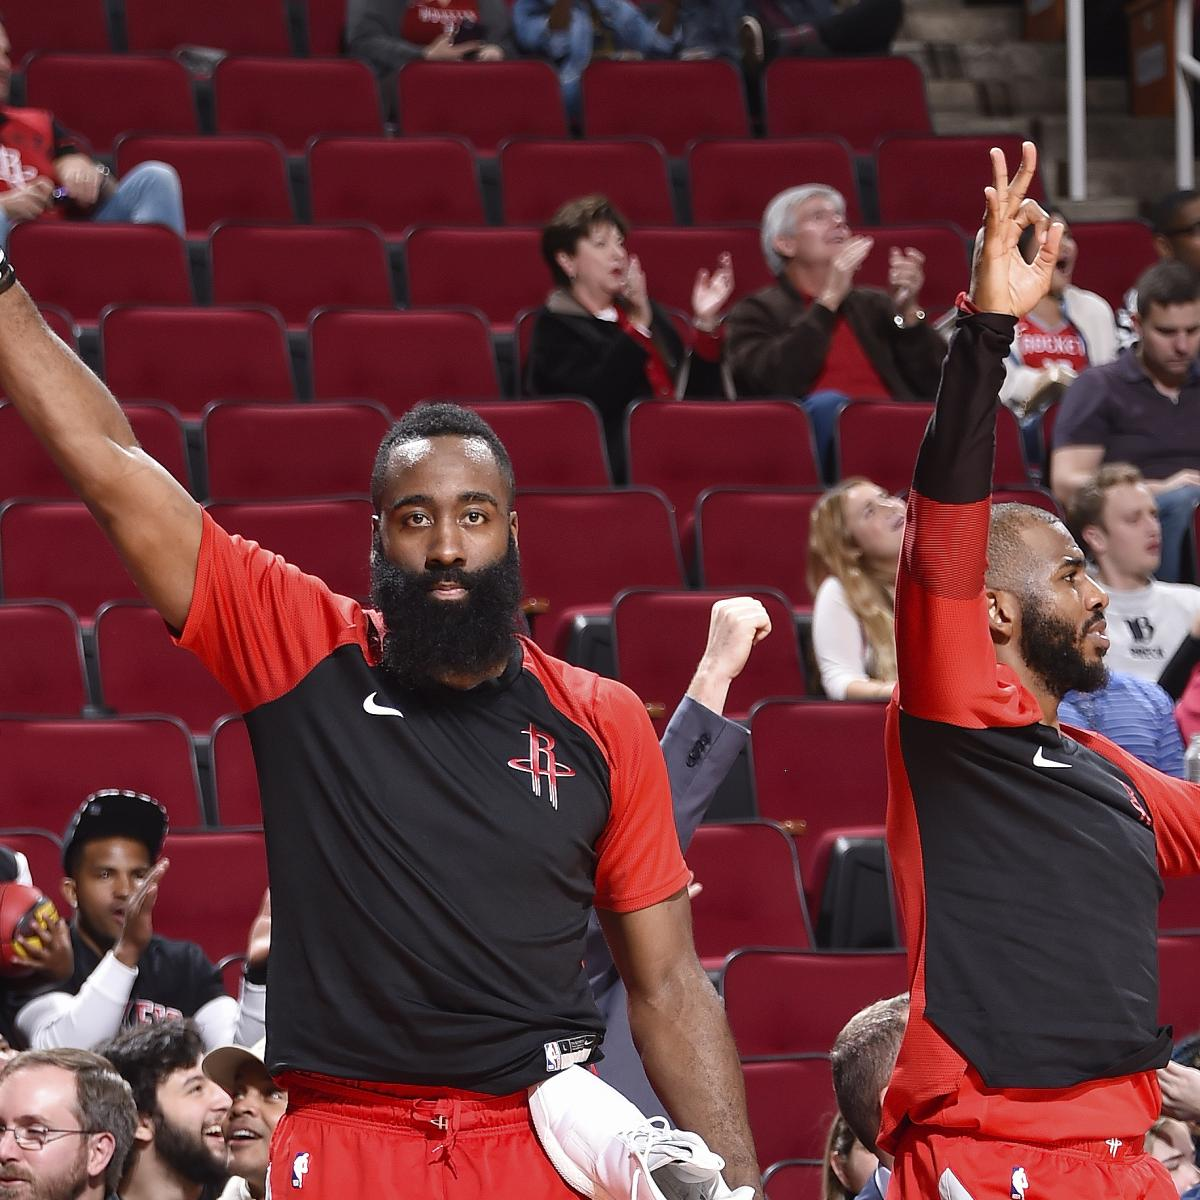 Houston Rockets Record 2018: Houston Rockets Set NBA Record With 26 3-Pointers In A